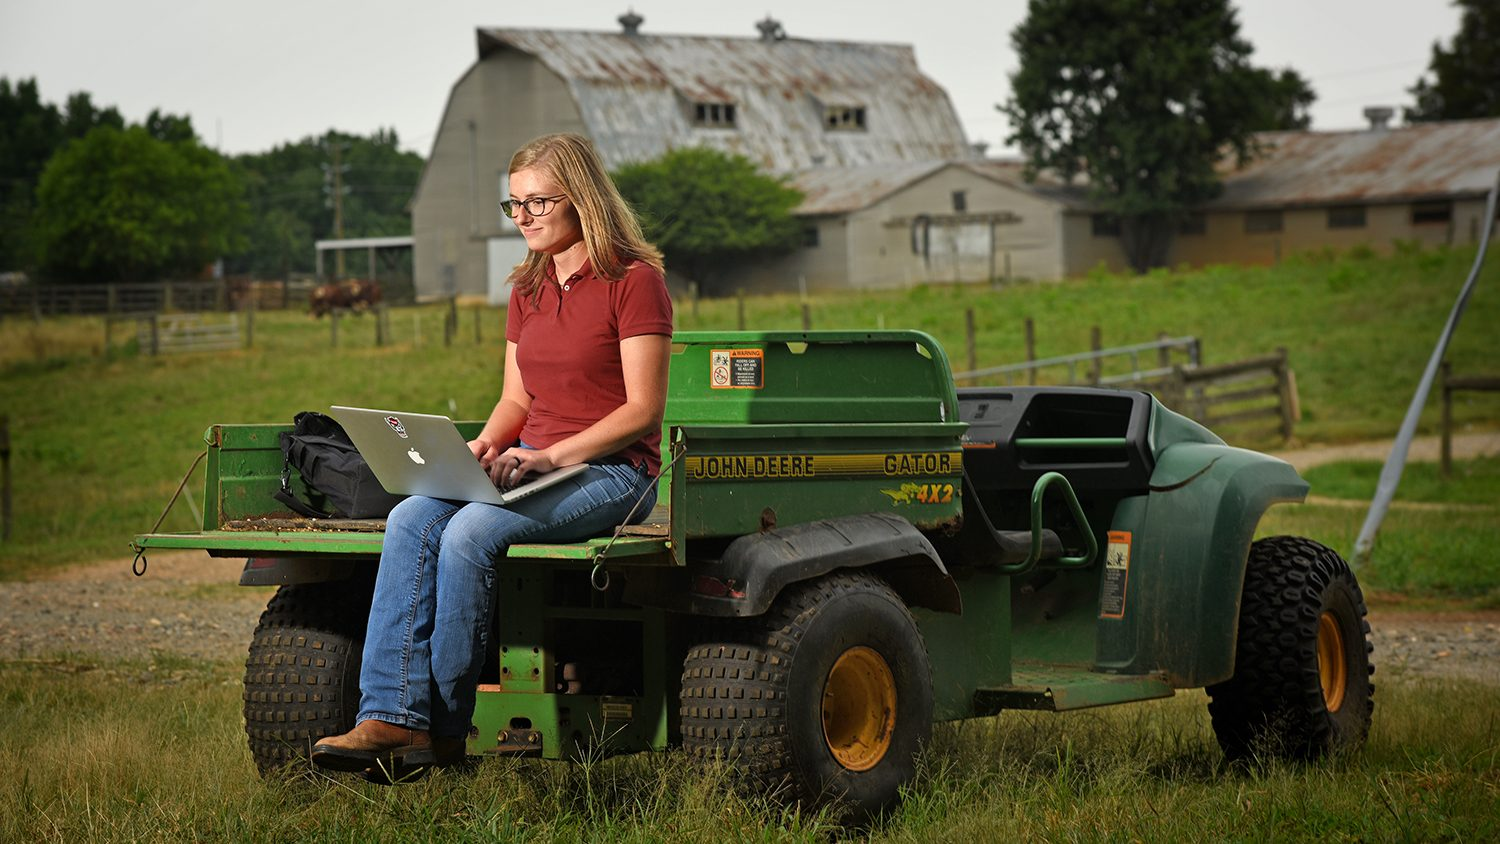 Animal Science student working on laptop sitting on a tractor.